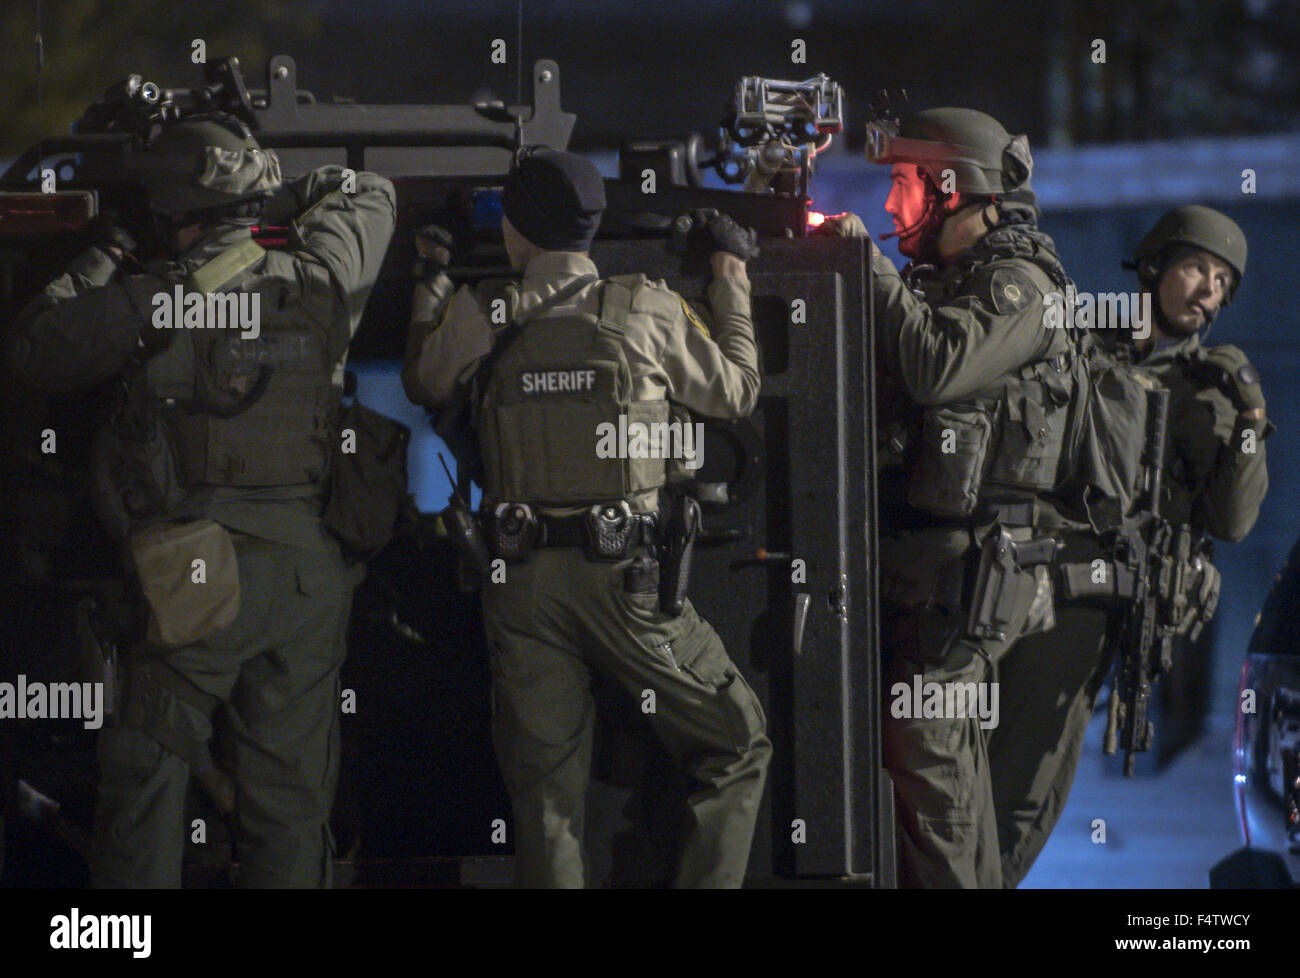 New mexico bernalillo county - Albuquerque New Mexico Usa 21st Oct 2015 Roberto E Rosales Pictured Are Bernalillo County Sheriff Dept Swat Members Riding On An Armored Vehicle On